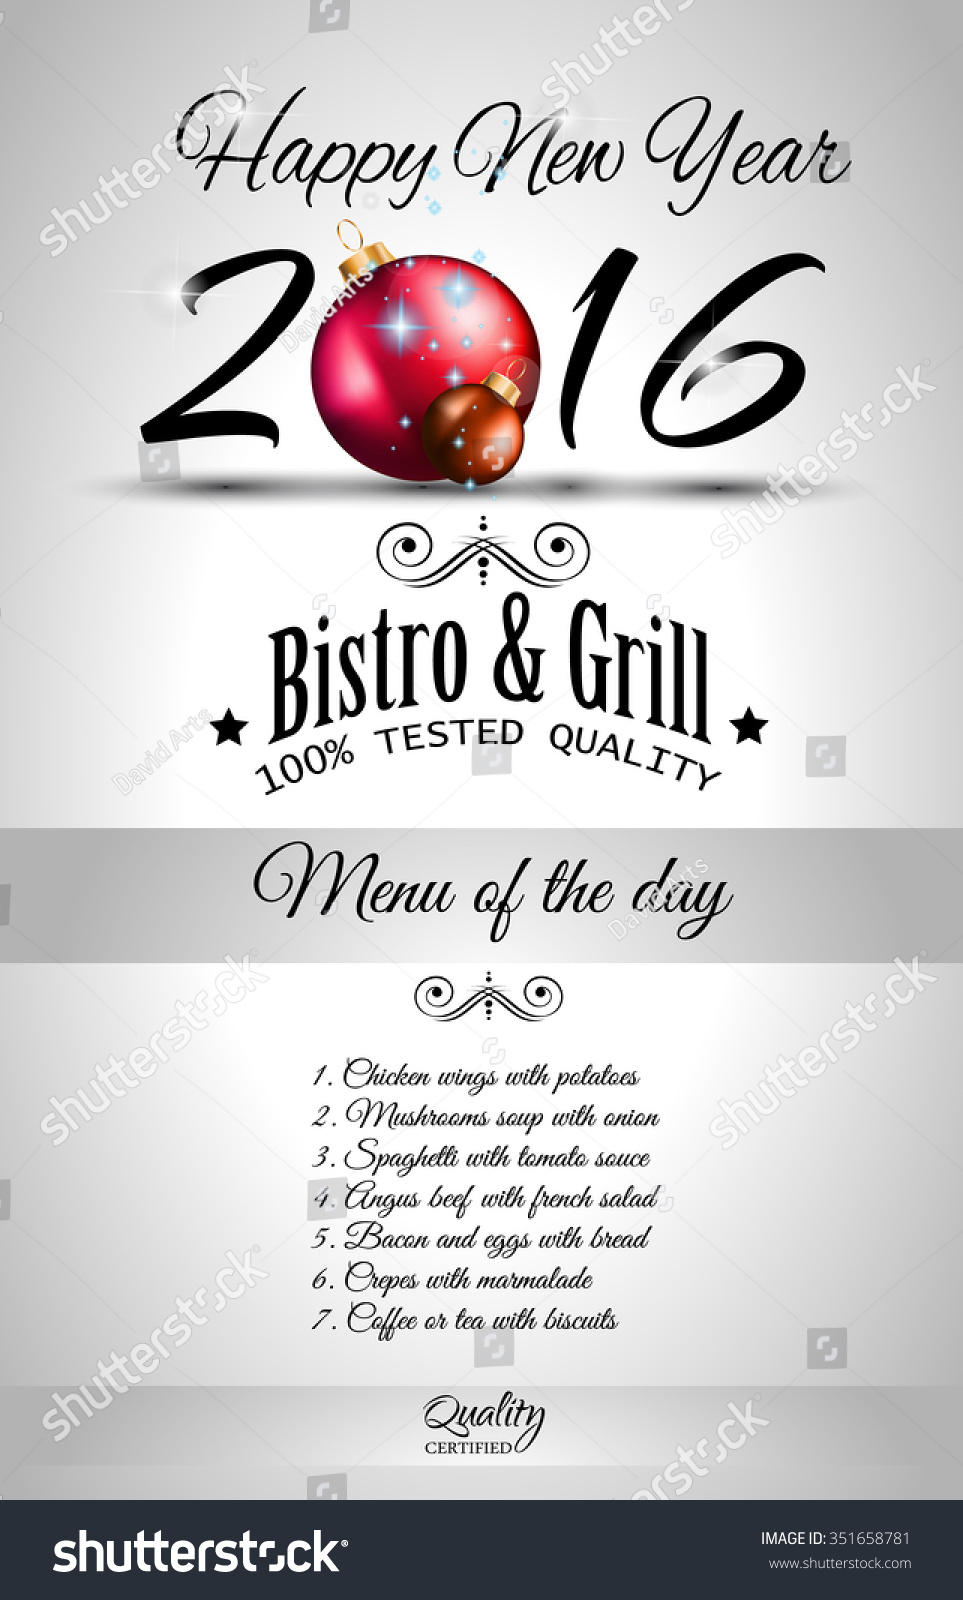 photo christmas dinner menu template images family christmas dinner clip art dinner menu templates stock vector happy new year restaurant menu